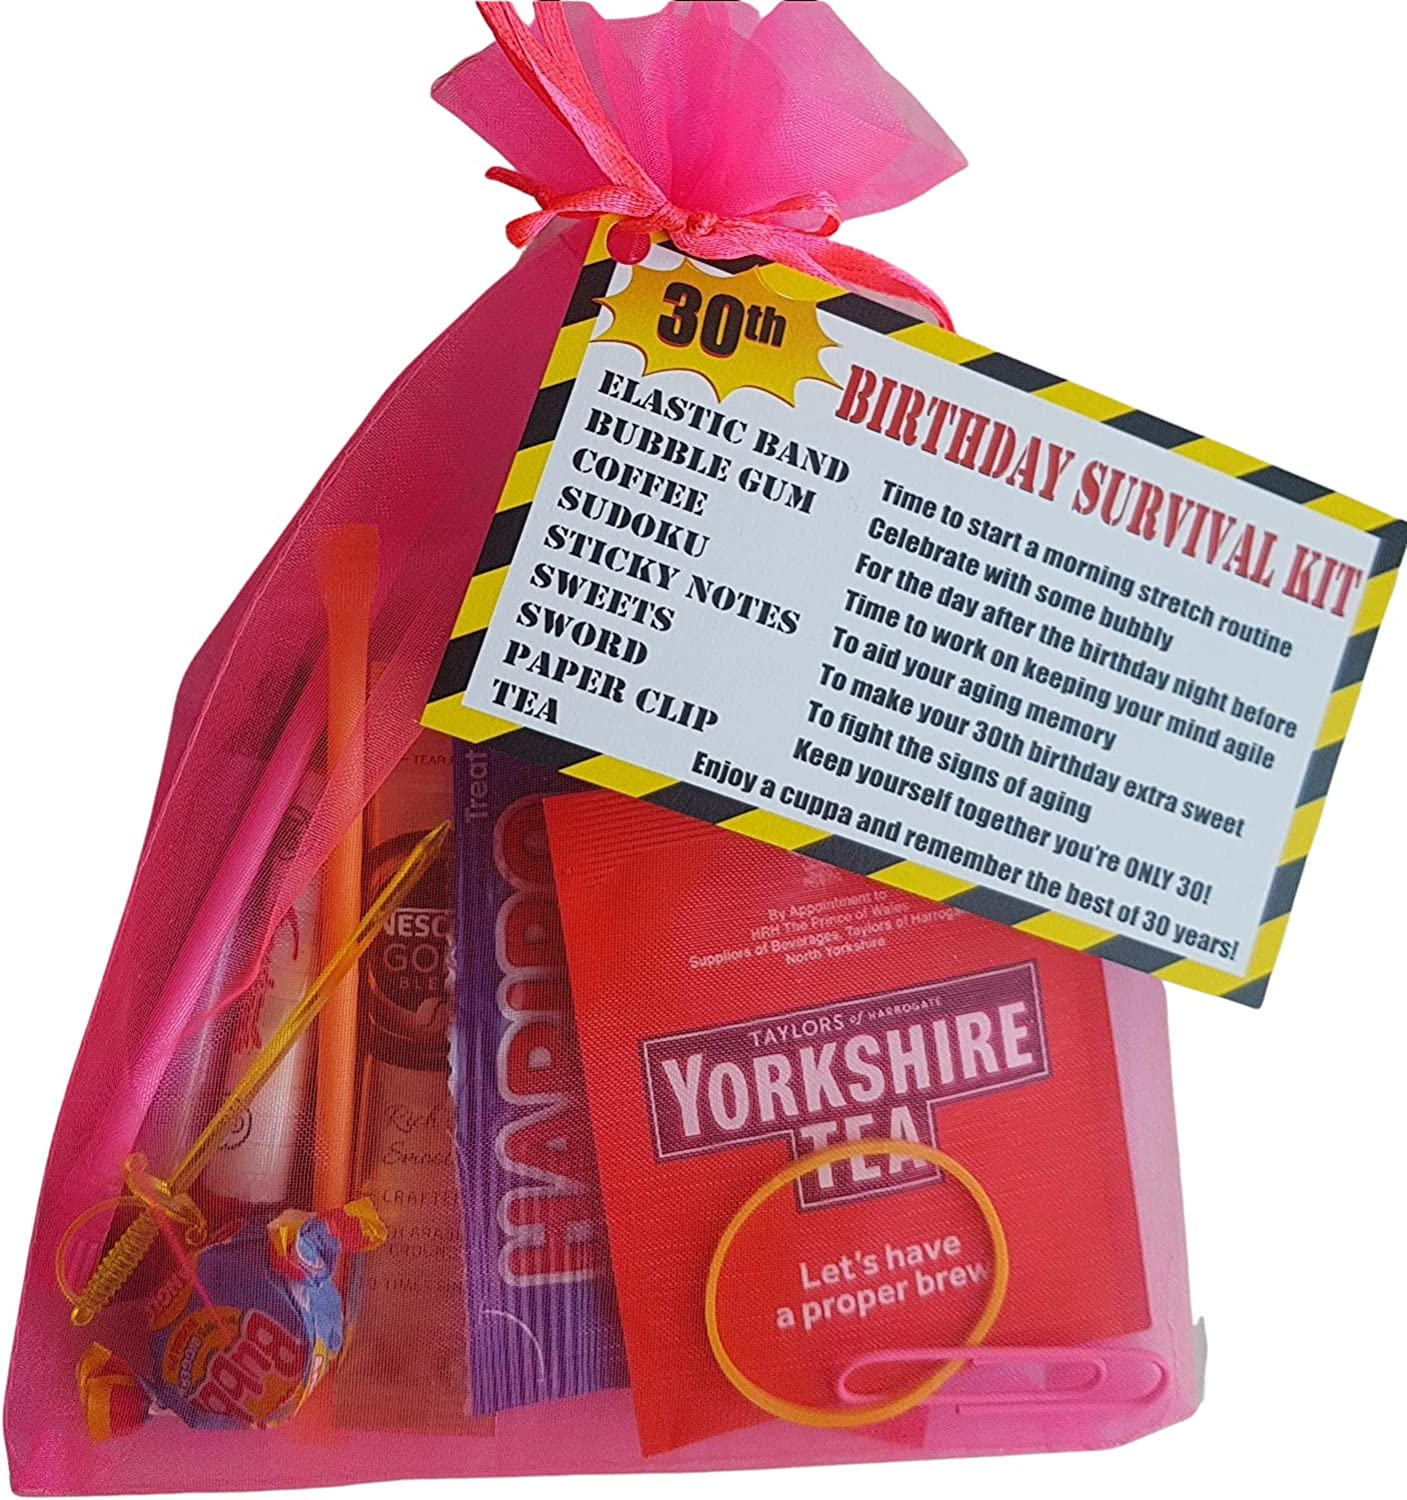 Pink 20th Birthday Survival KIT Gift/Present   a Fun Cheeky Gift to Make  Them Smile Birthday idea for Mum Sister Female Friend